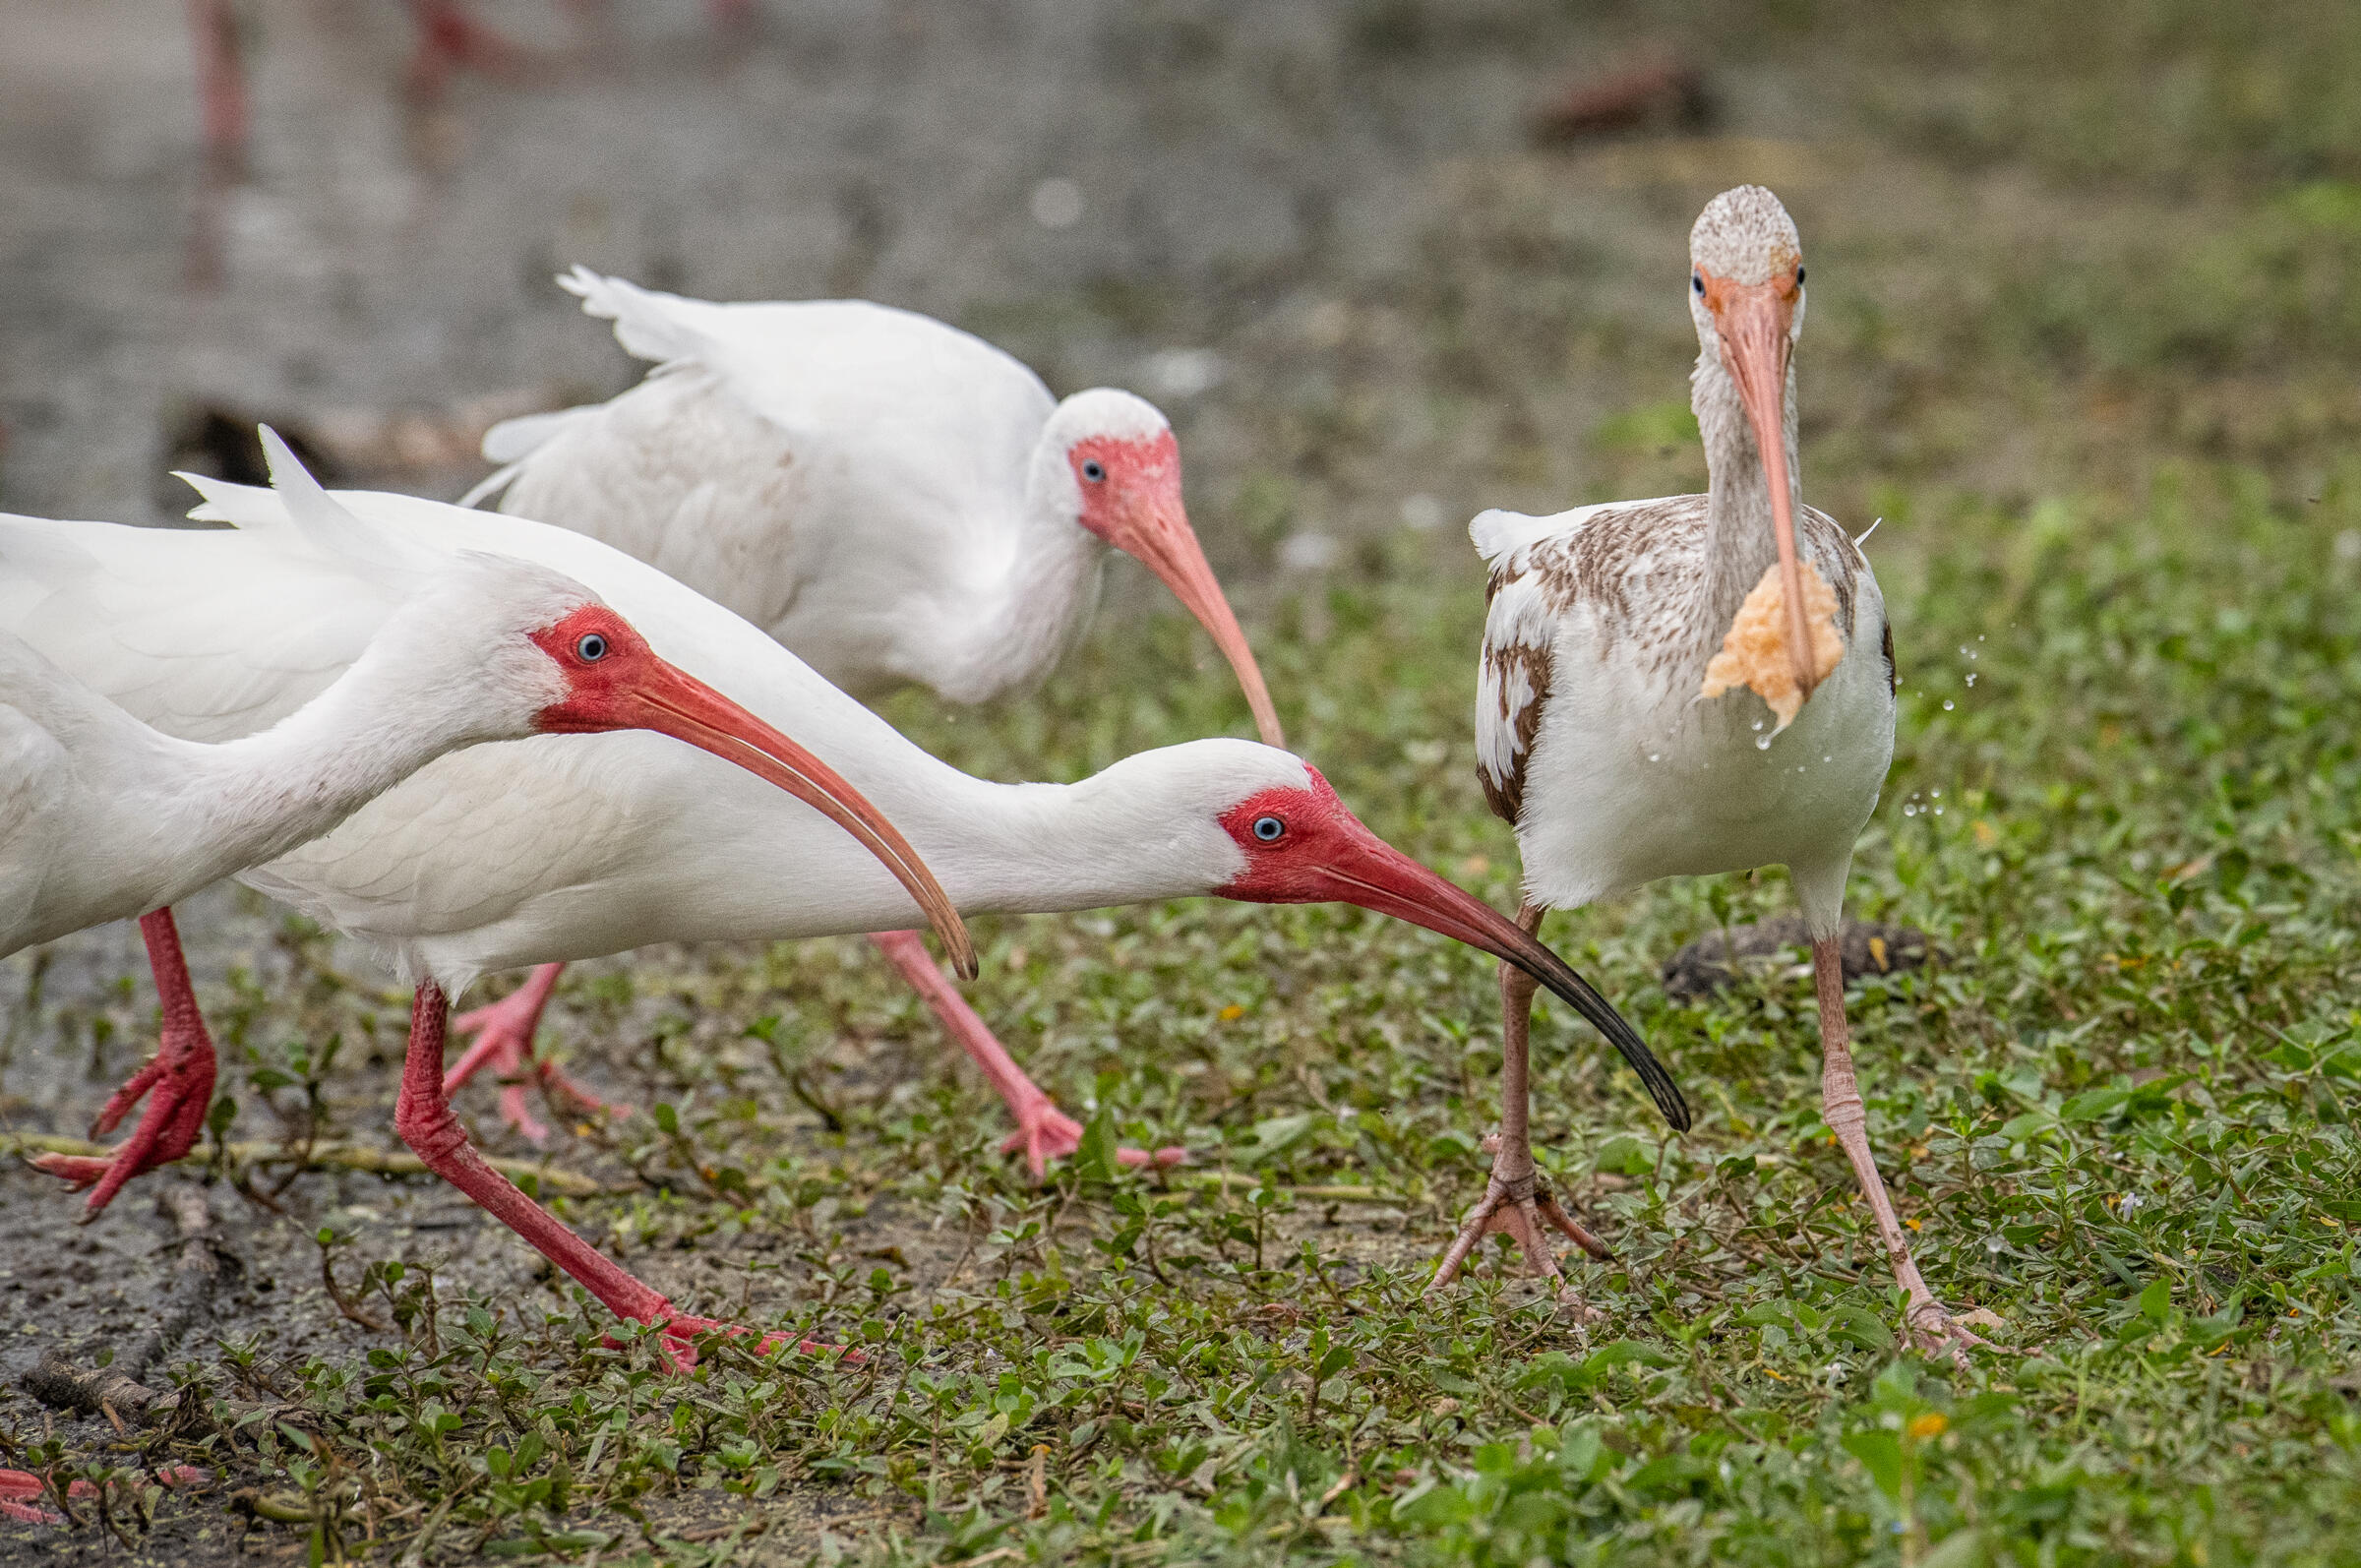 A mottled brown bird holds the piece of bread in its long red beak, while three other all-white birds reach for the bread with their beaks and heads outstretched.